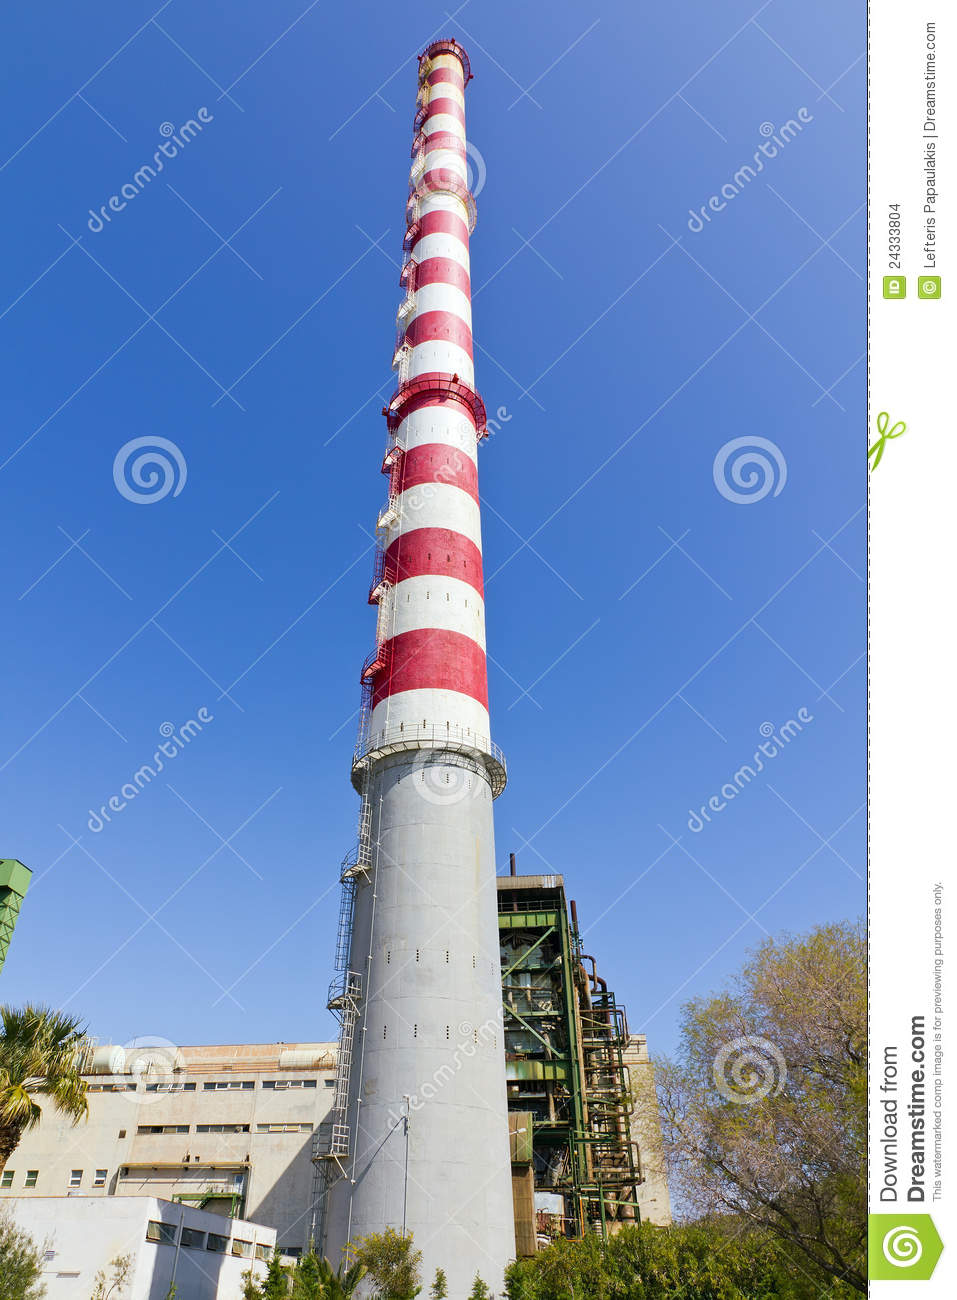 150 Meters Tall Power Plant Chimney Stock Images - Image ...